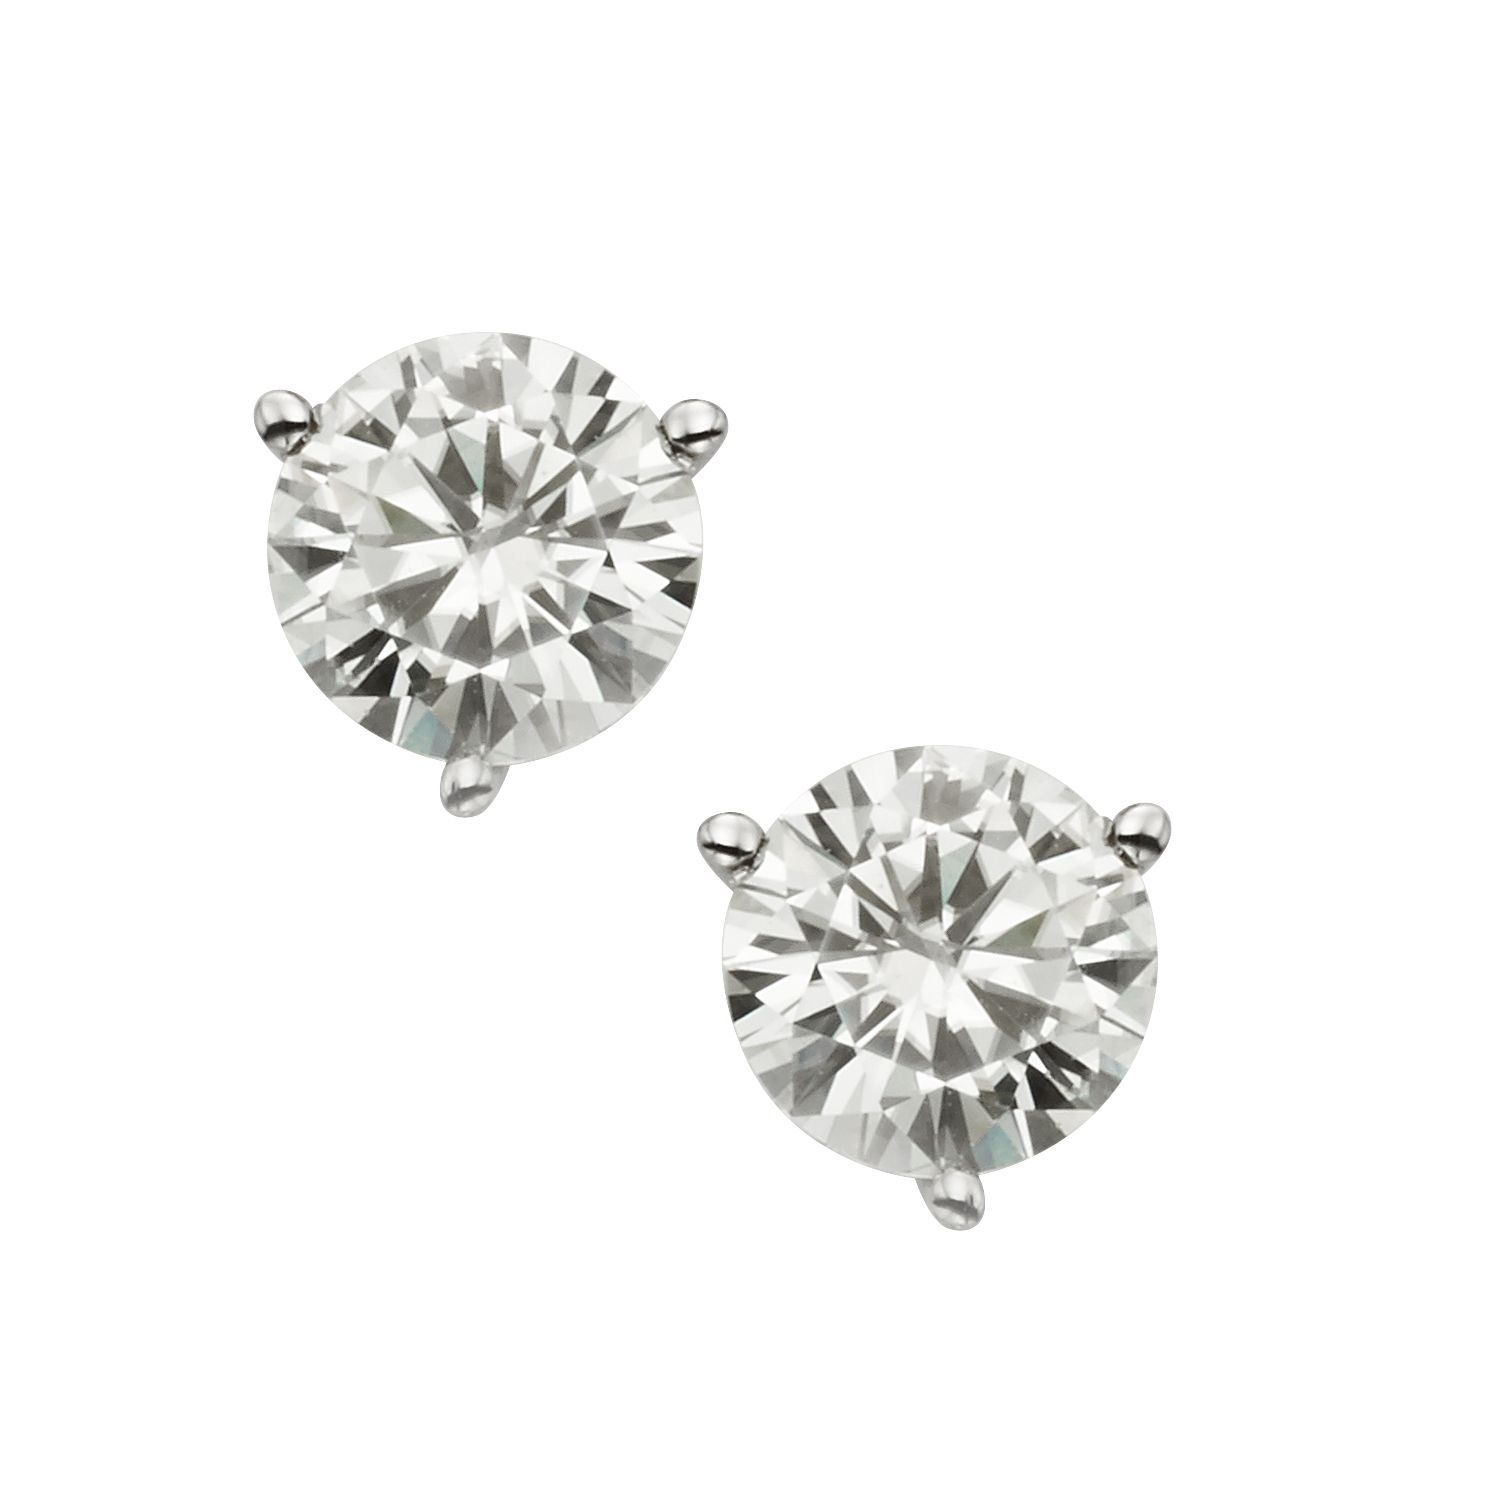 p picture gold of colvard s white moissanite earrings round charles stud dew